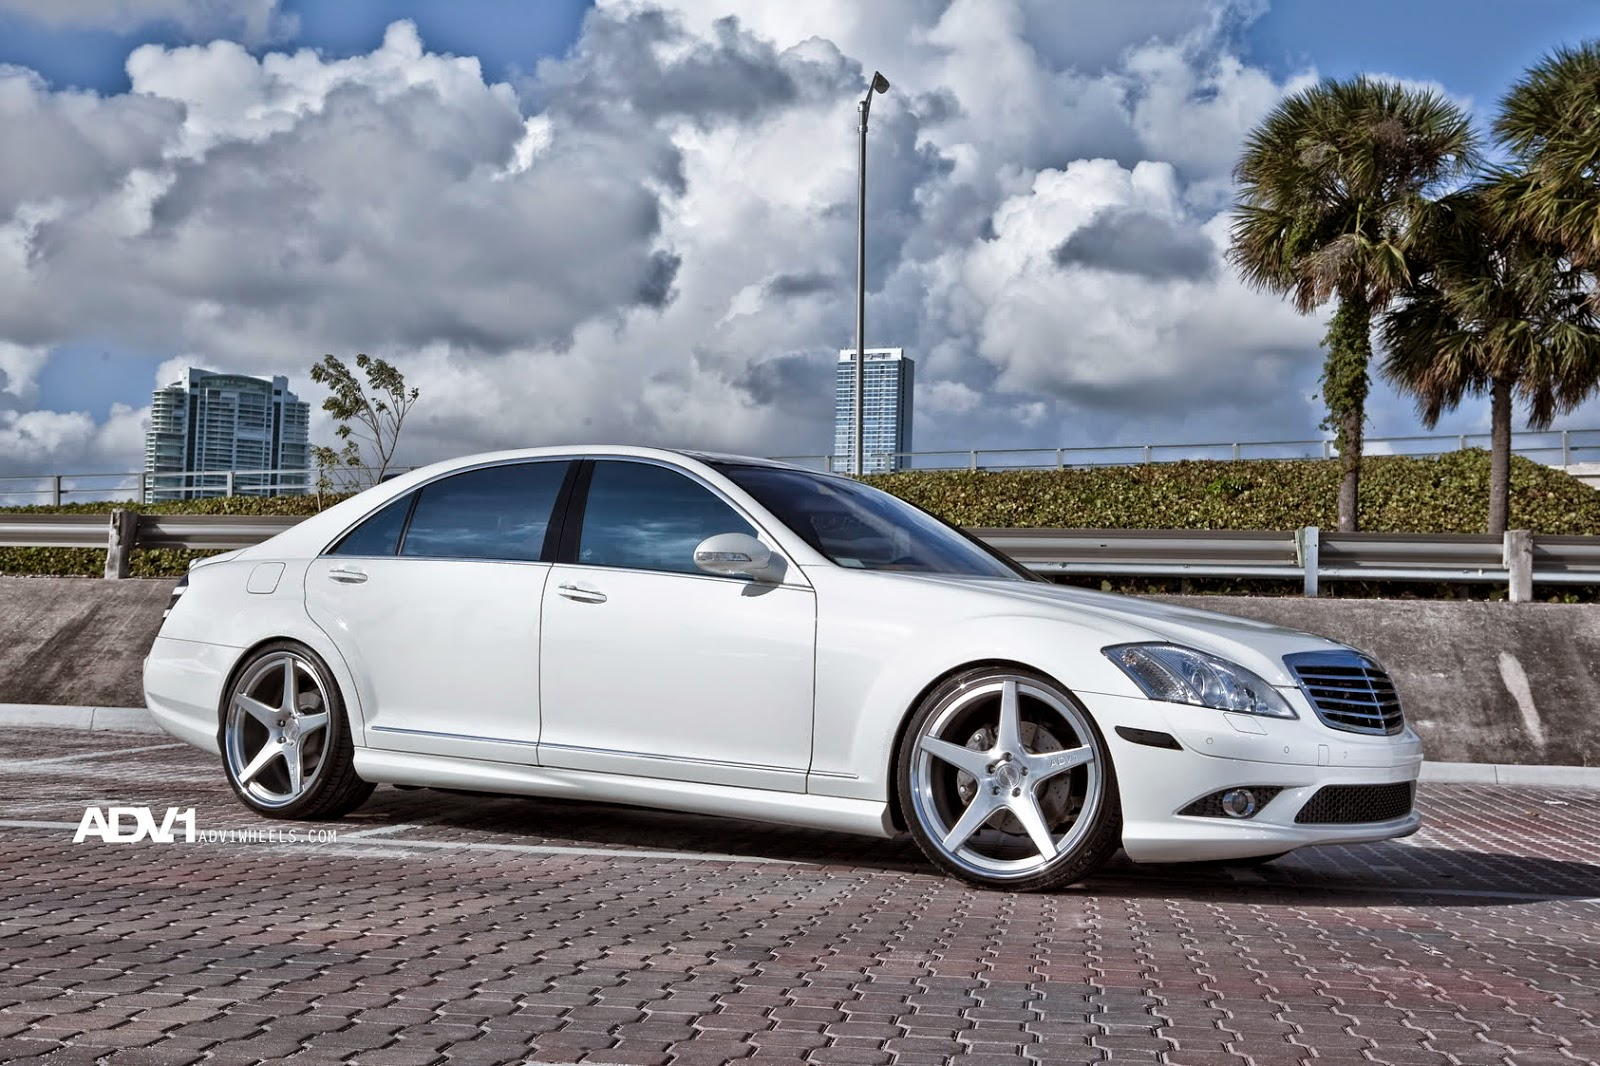 Mercedes benz w221 s550 on adv 1 wheels benztuning for Mercedes benz wheel